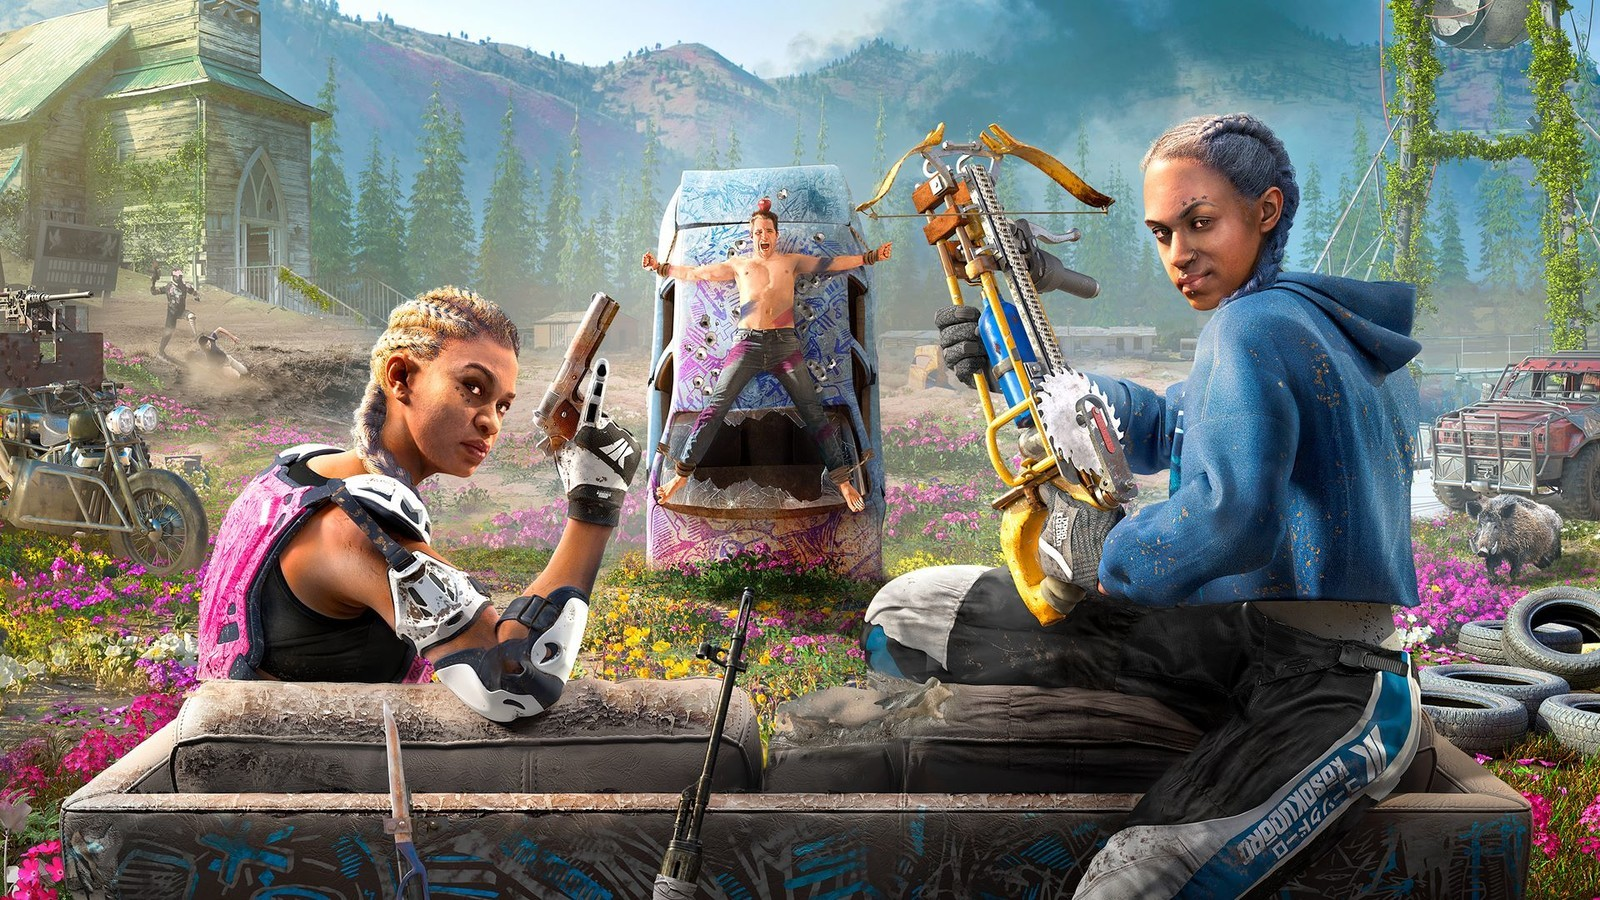 Today's Best Game Deals: Far Cry New Dawn, Star Wars, more - 9to5Toys